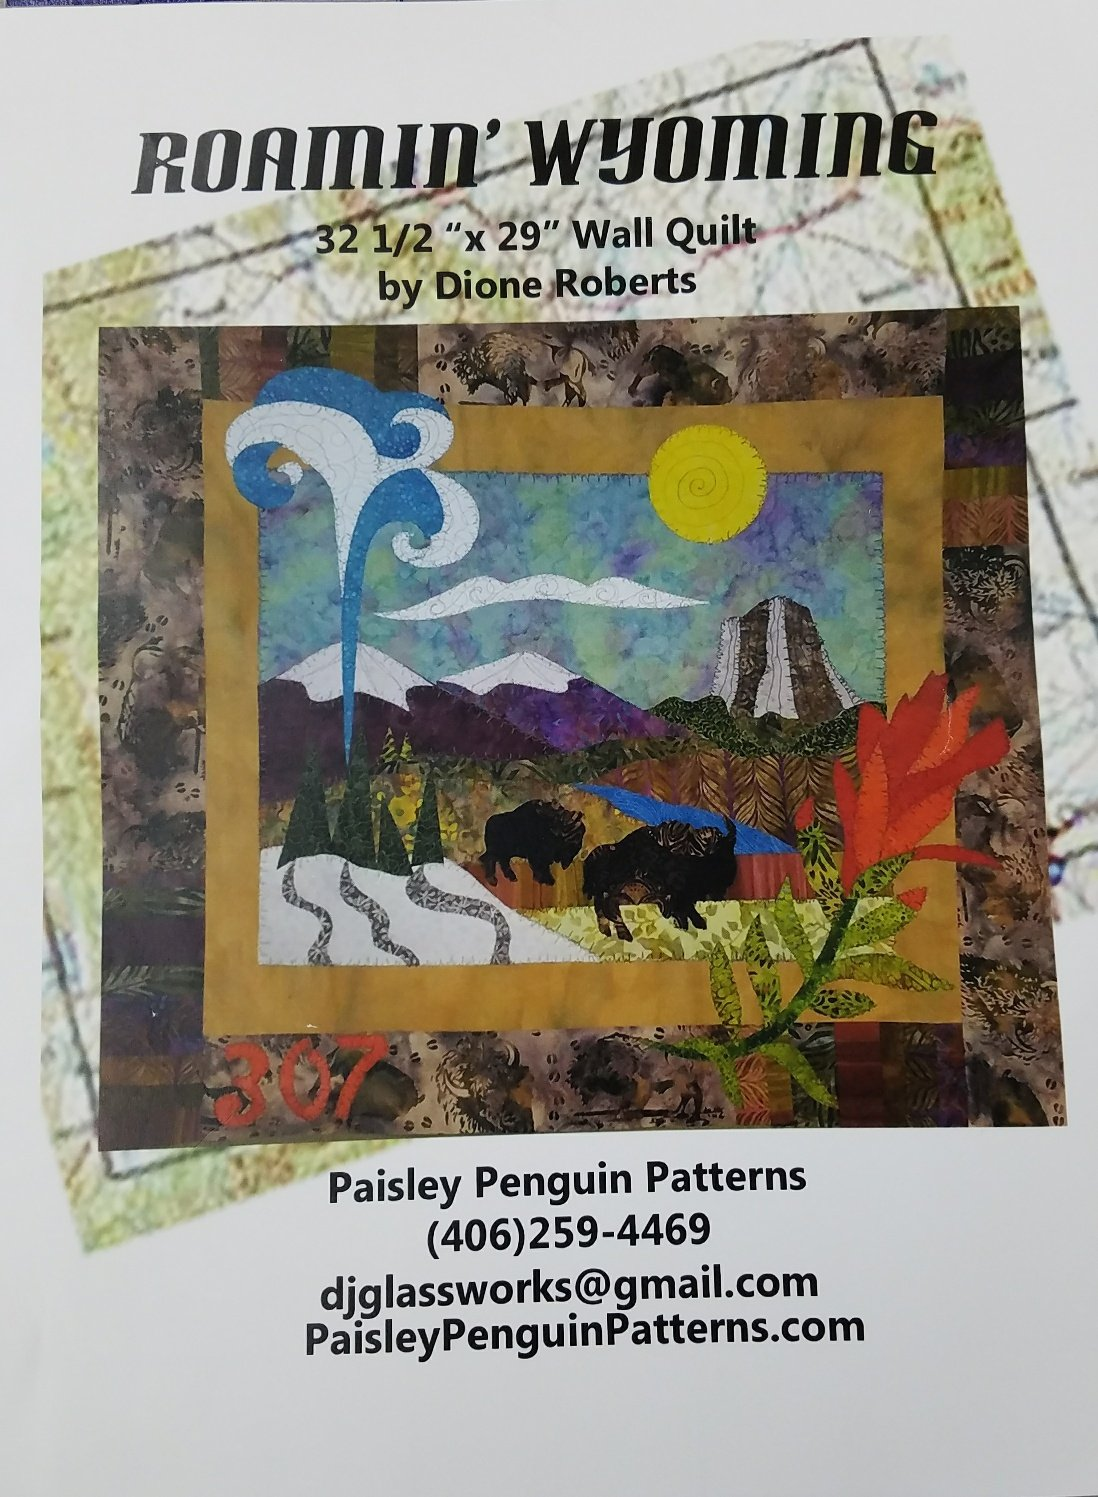 Roamin' Wyoming Dione Roberts Applique Wall Quilt 32 1/2 x 29